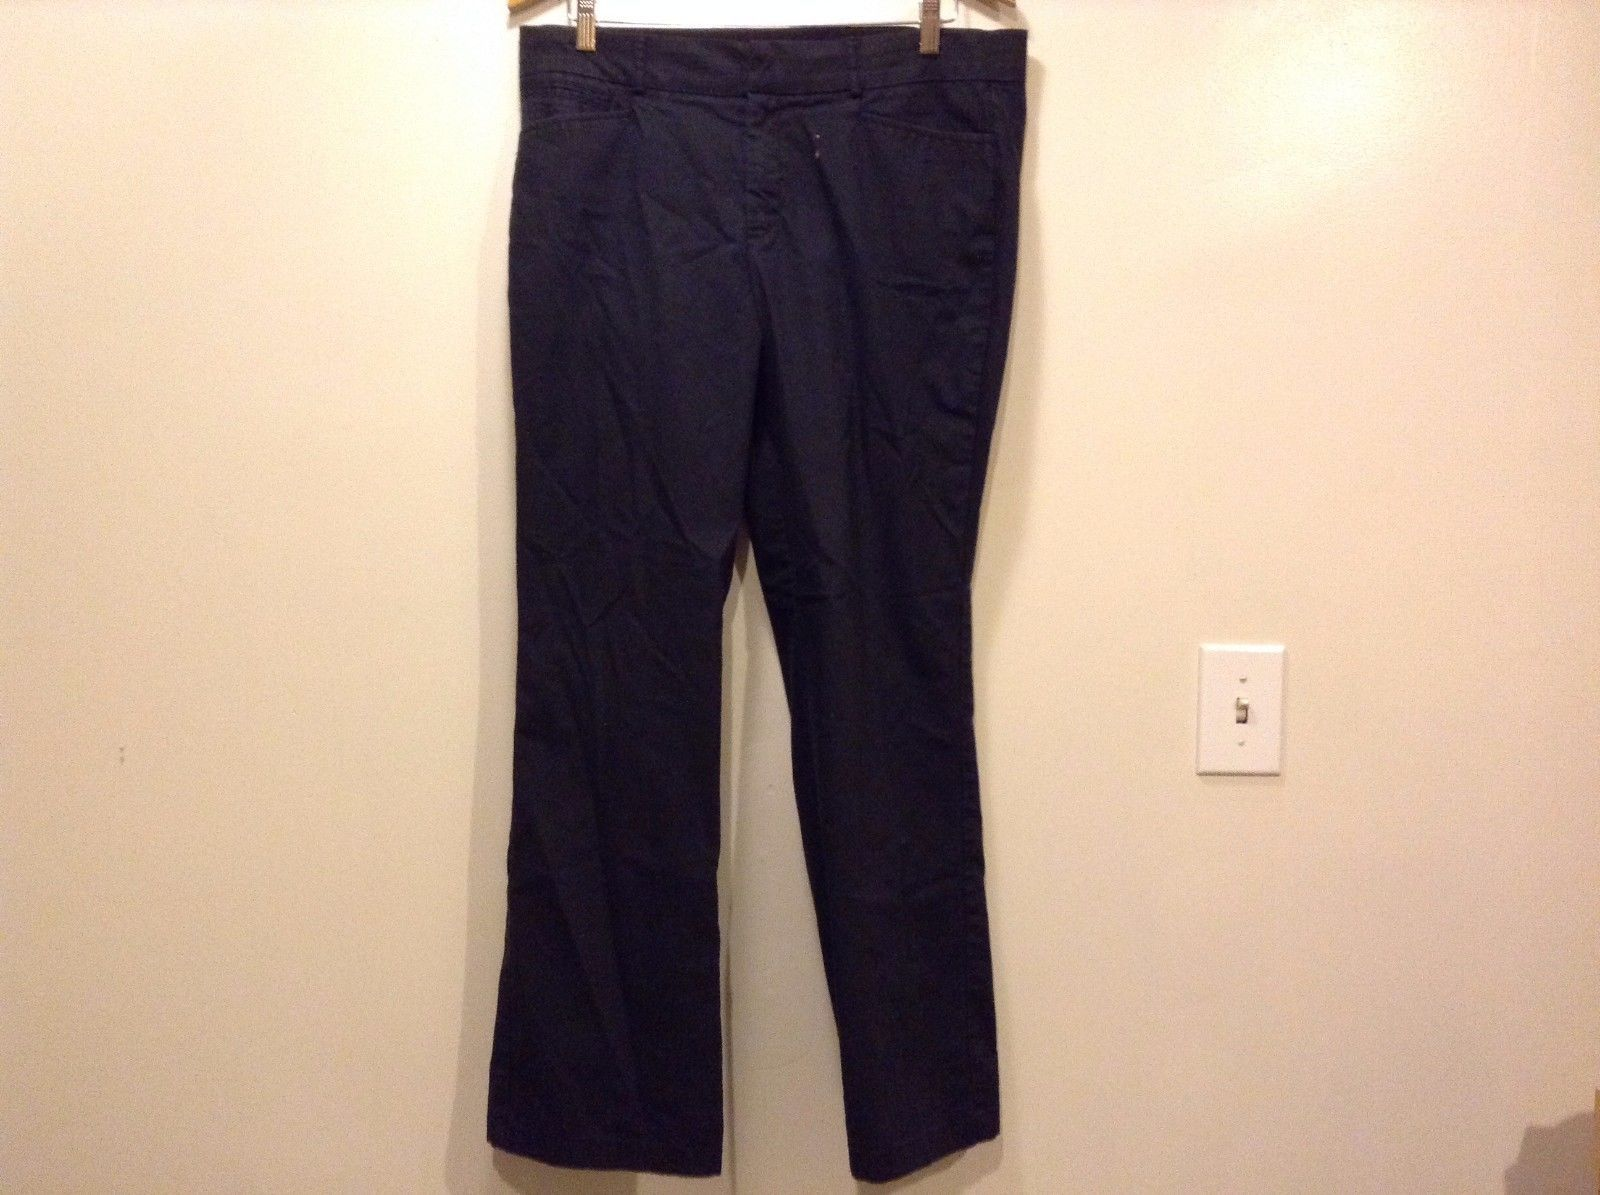 Good Condition Dockers Pants Medium Size 14 Cotton Blend Button Clip Zipper